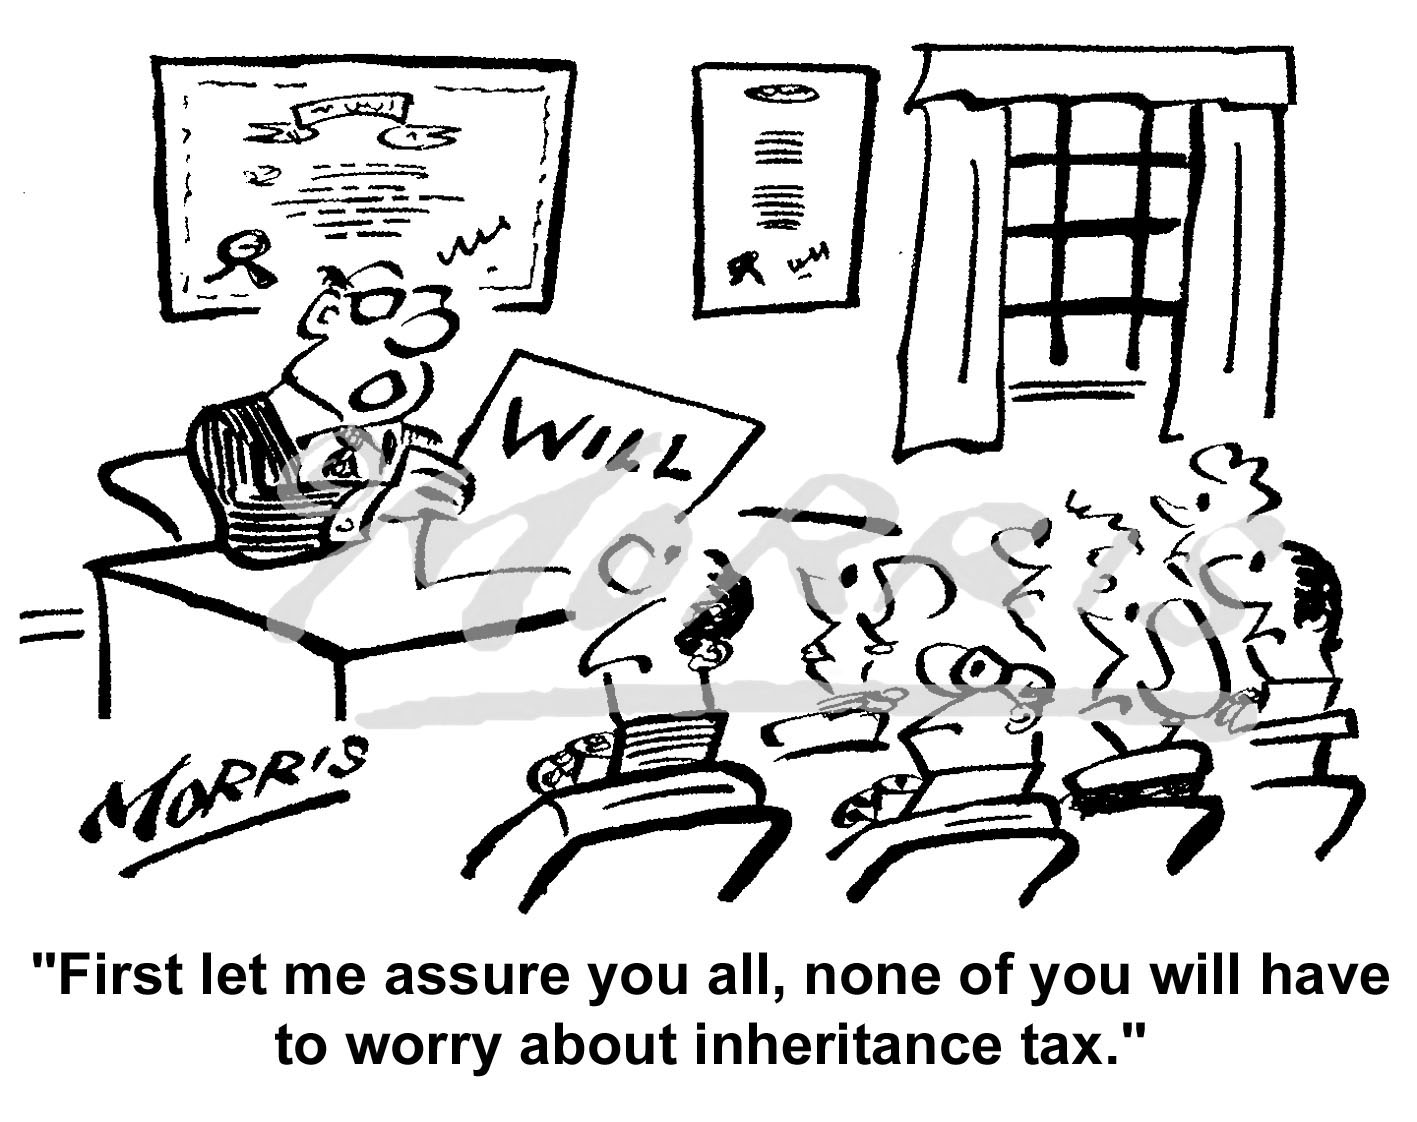 Inheritance tax cartoon – Ref: 4972bw